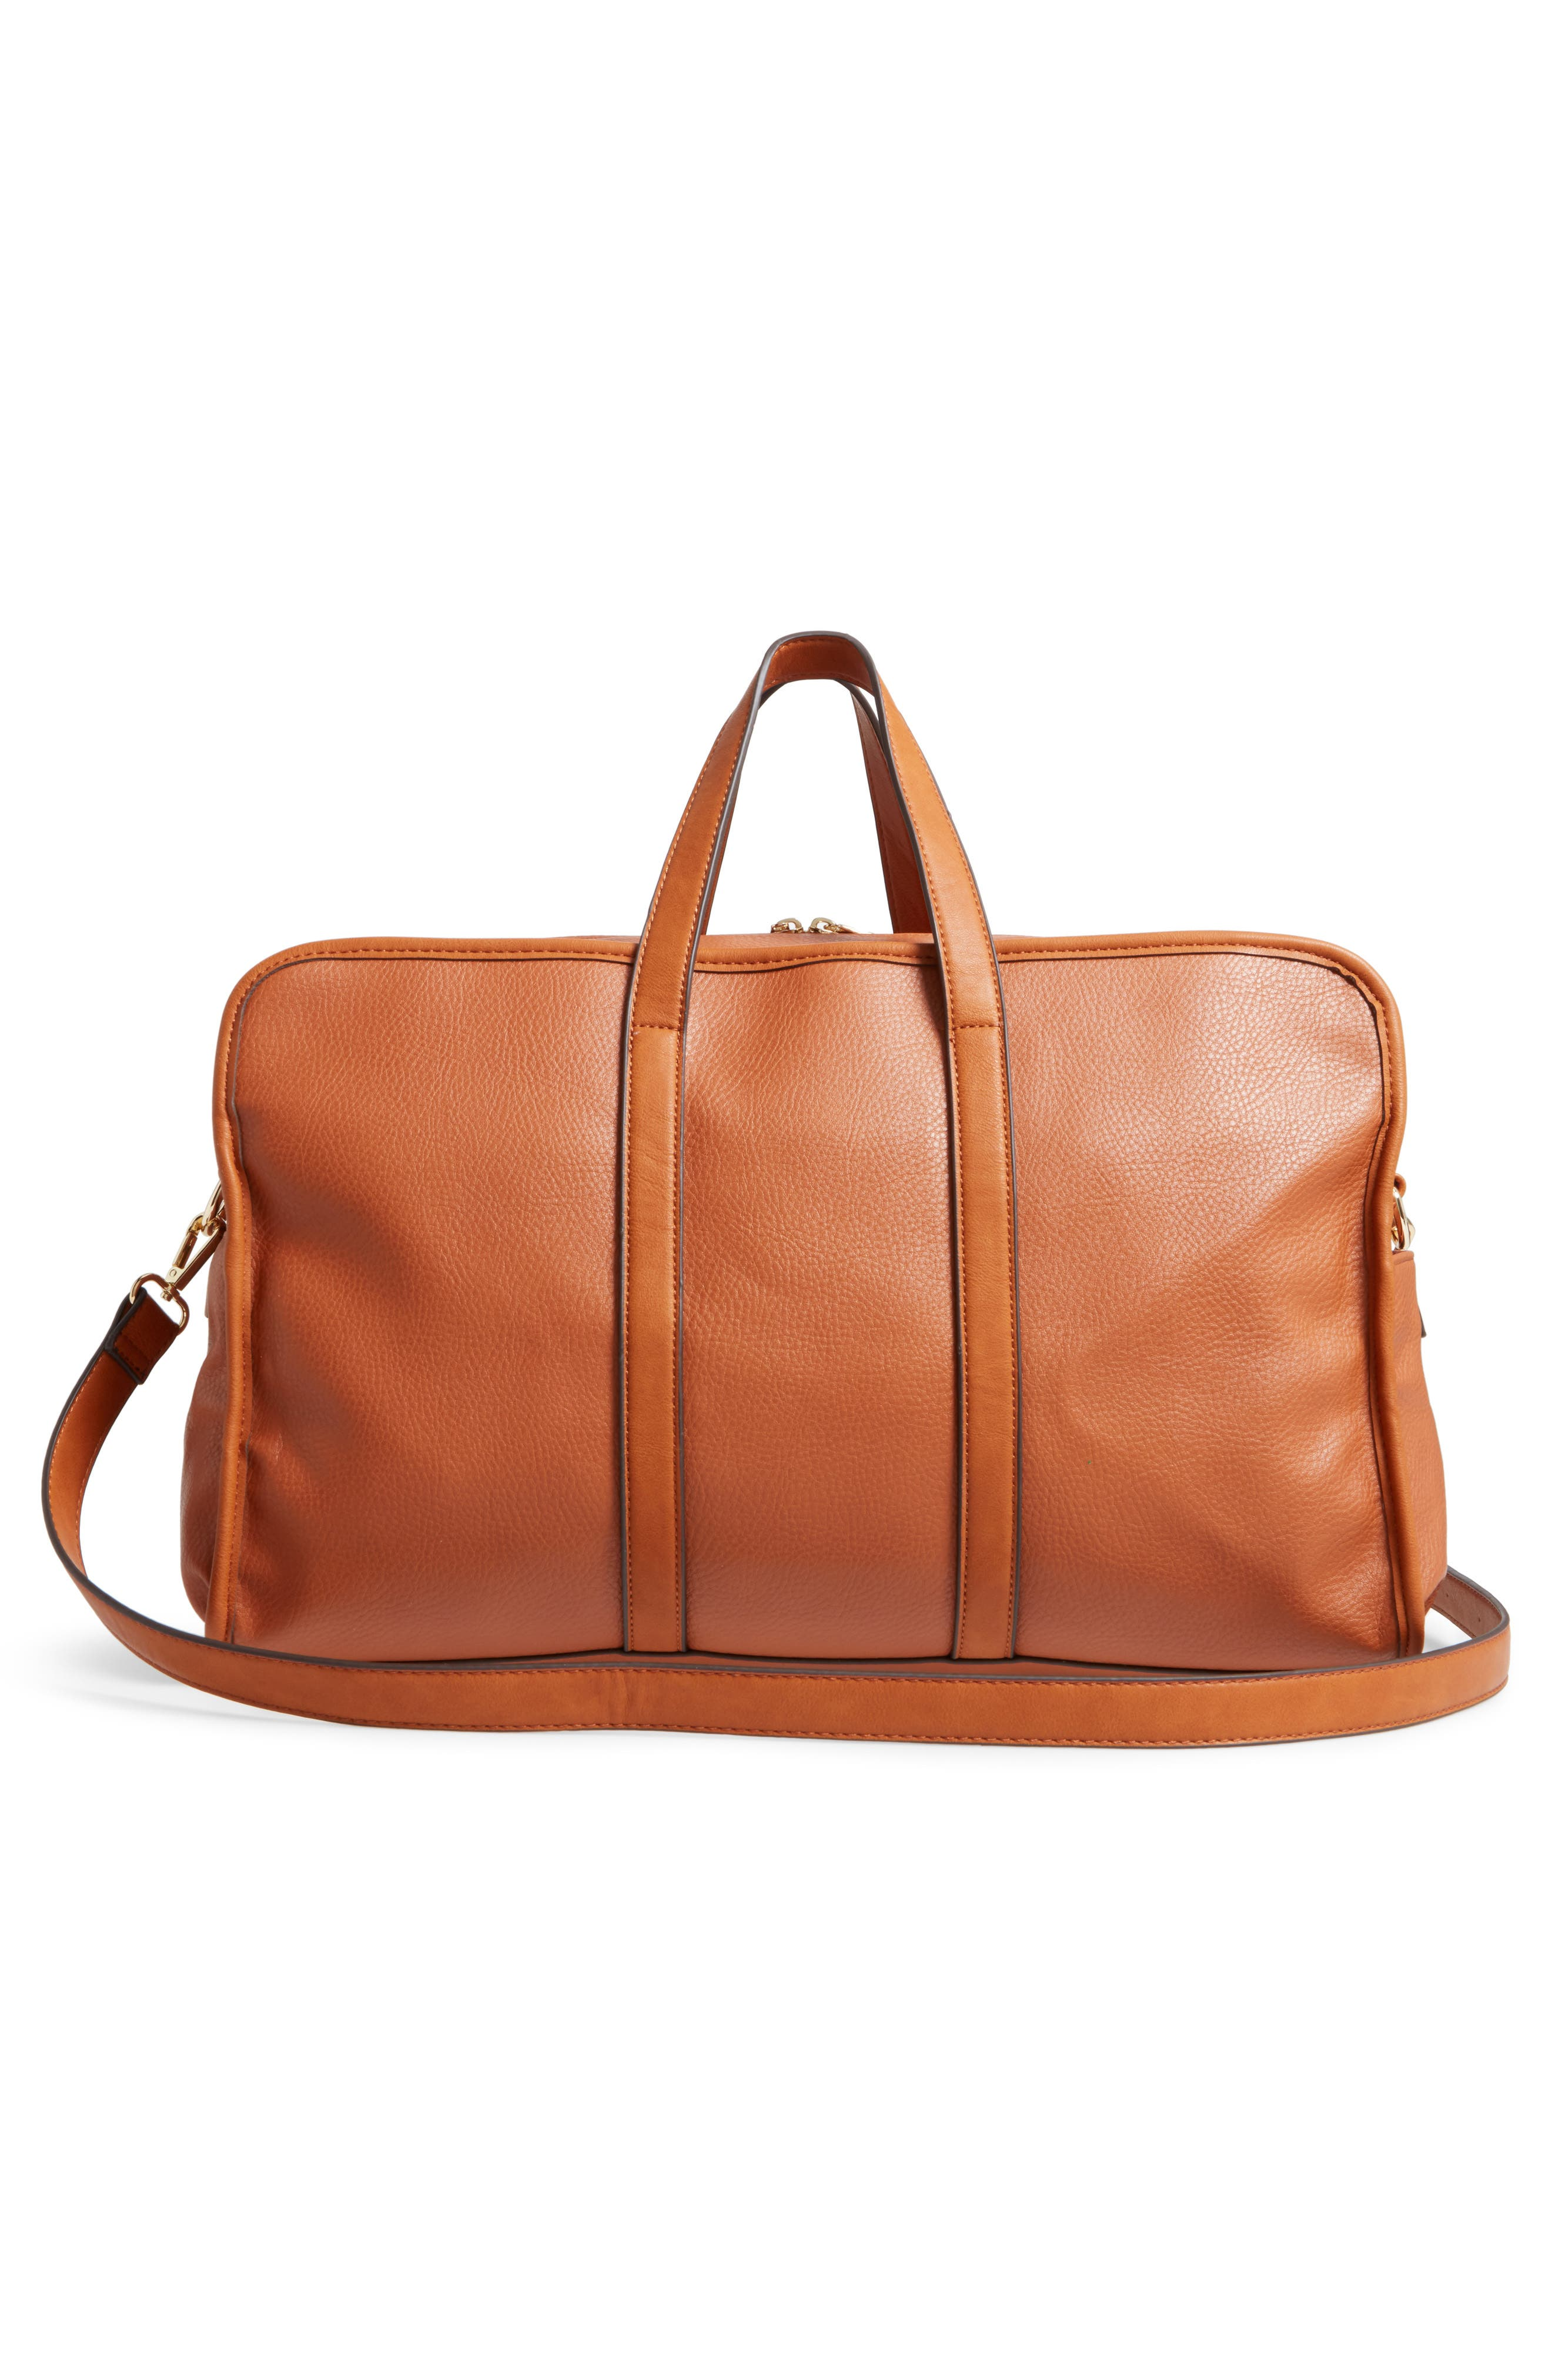 Doxin Faux Leather Duffel Bag,                             Alternate thumbnail 6, color,